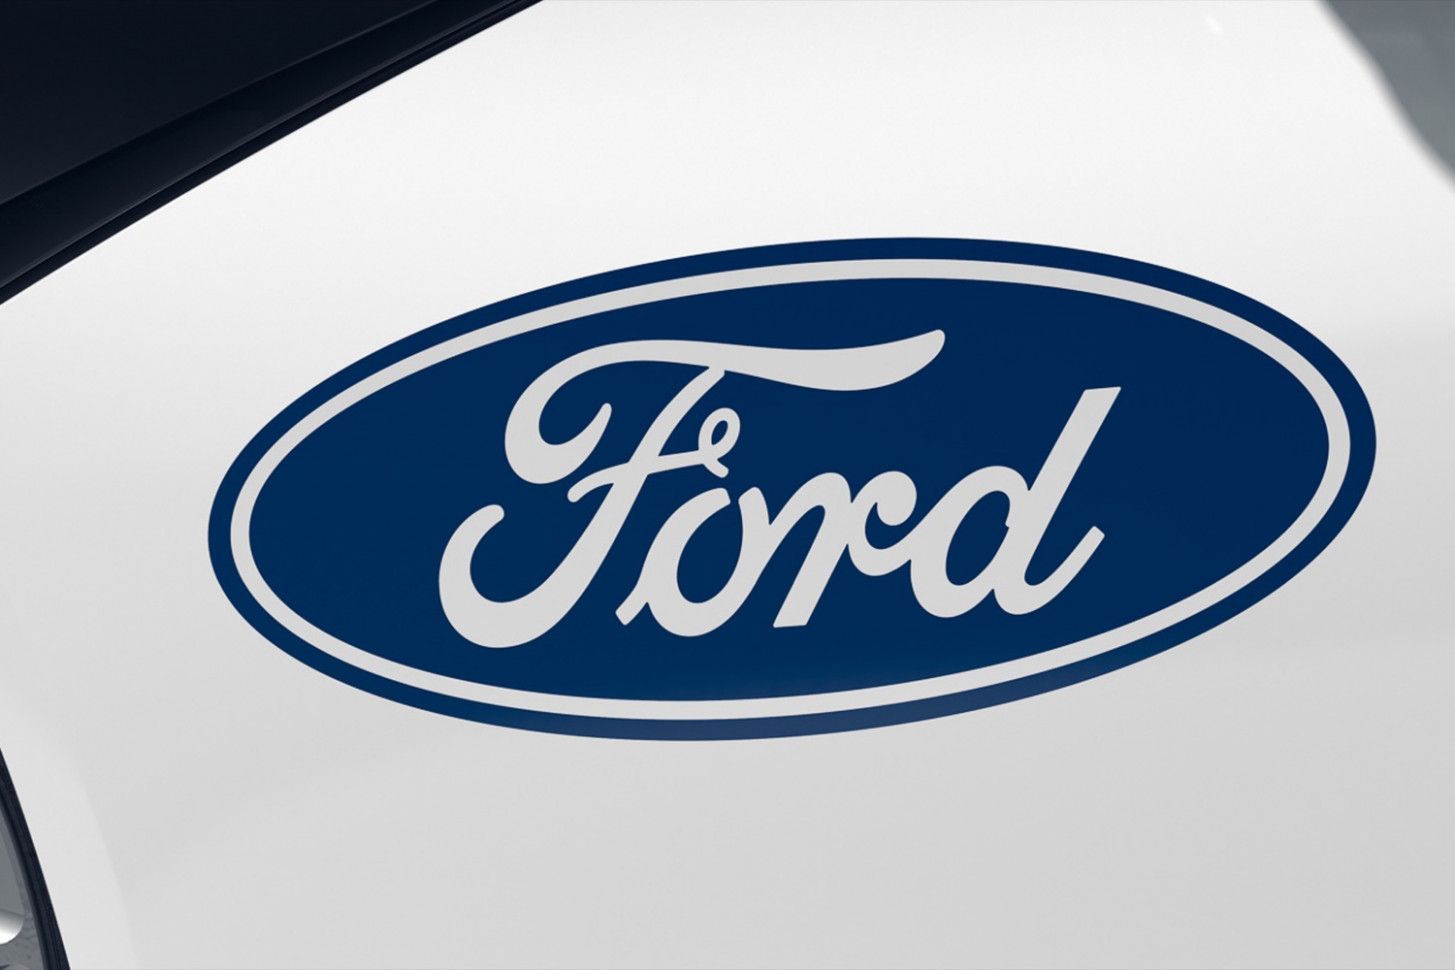 Ford Stock Value Down 12% During July 12 - July 12, 2012 - ford layoffs april 2020